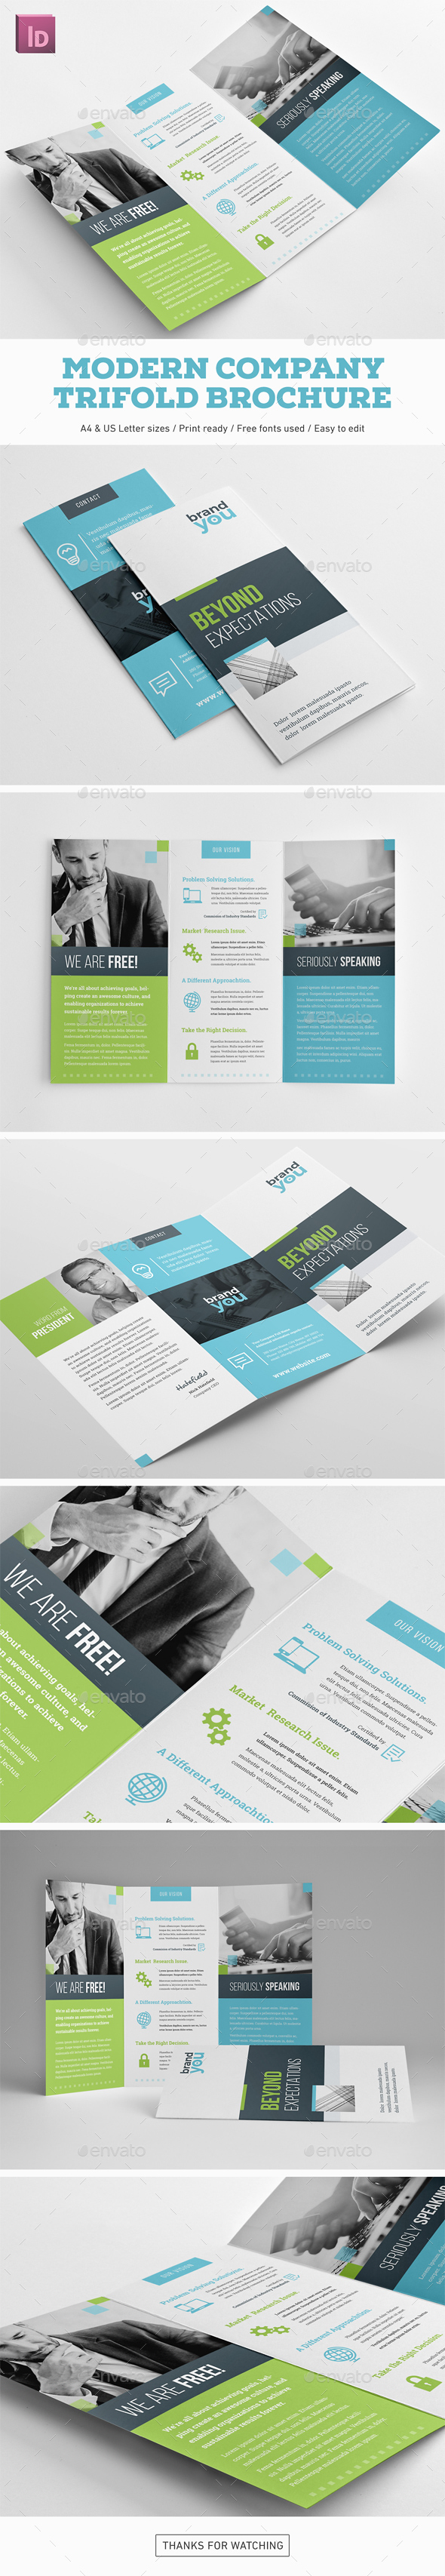 Modern Company Trifold Brochure - Corporate Brochures